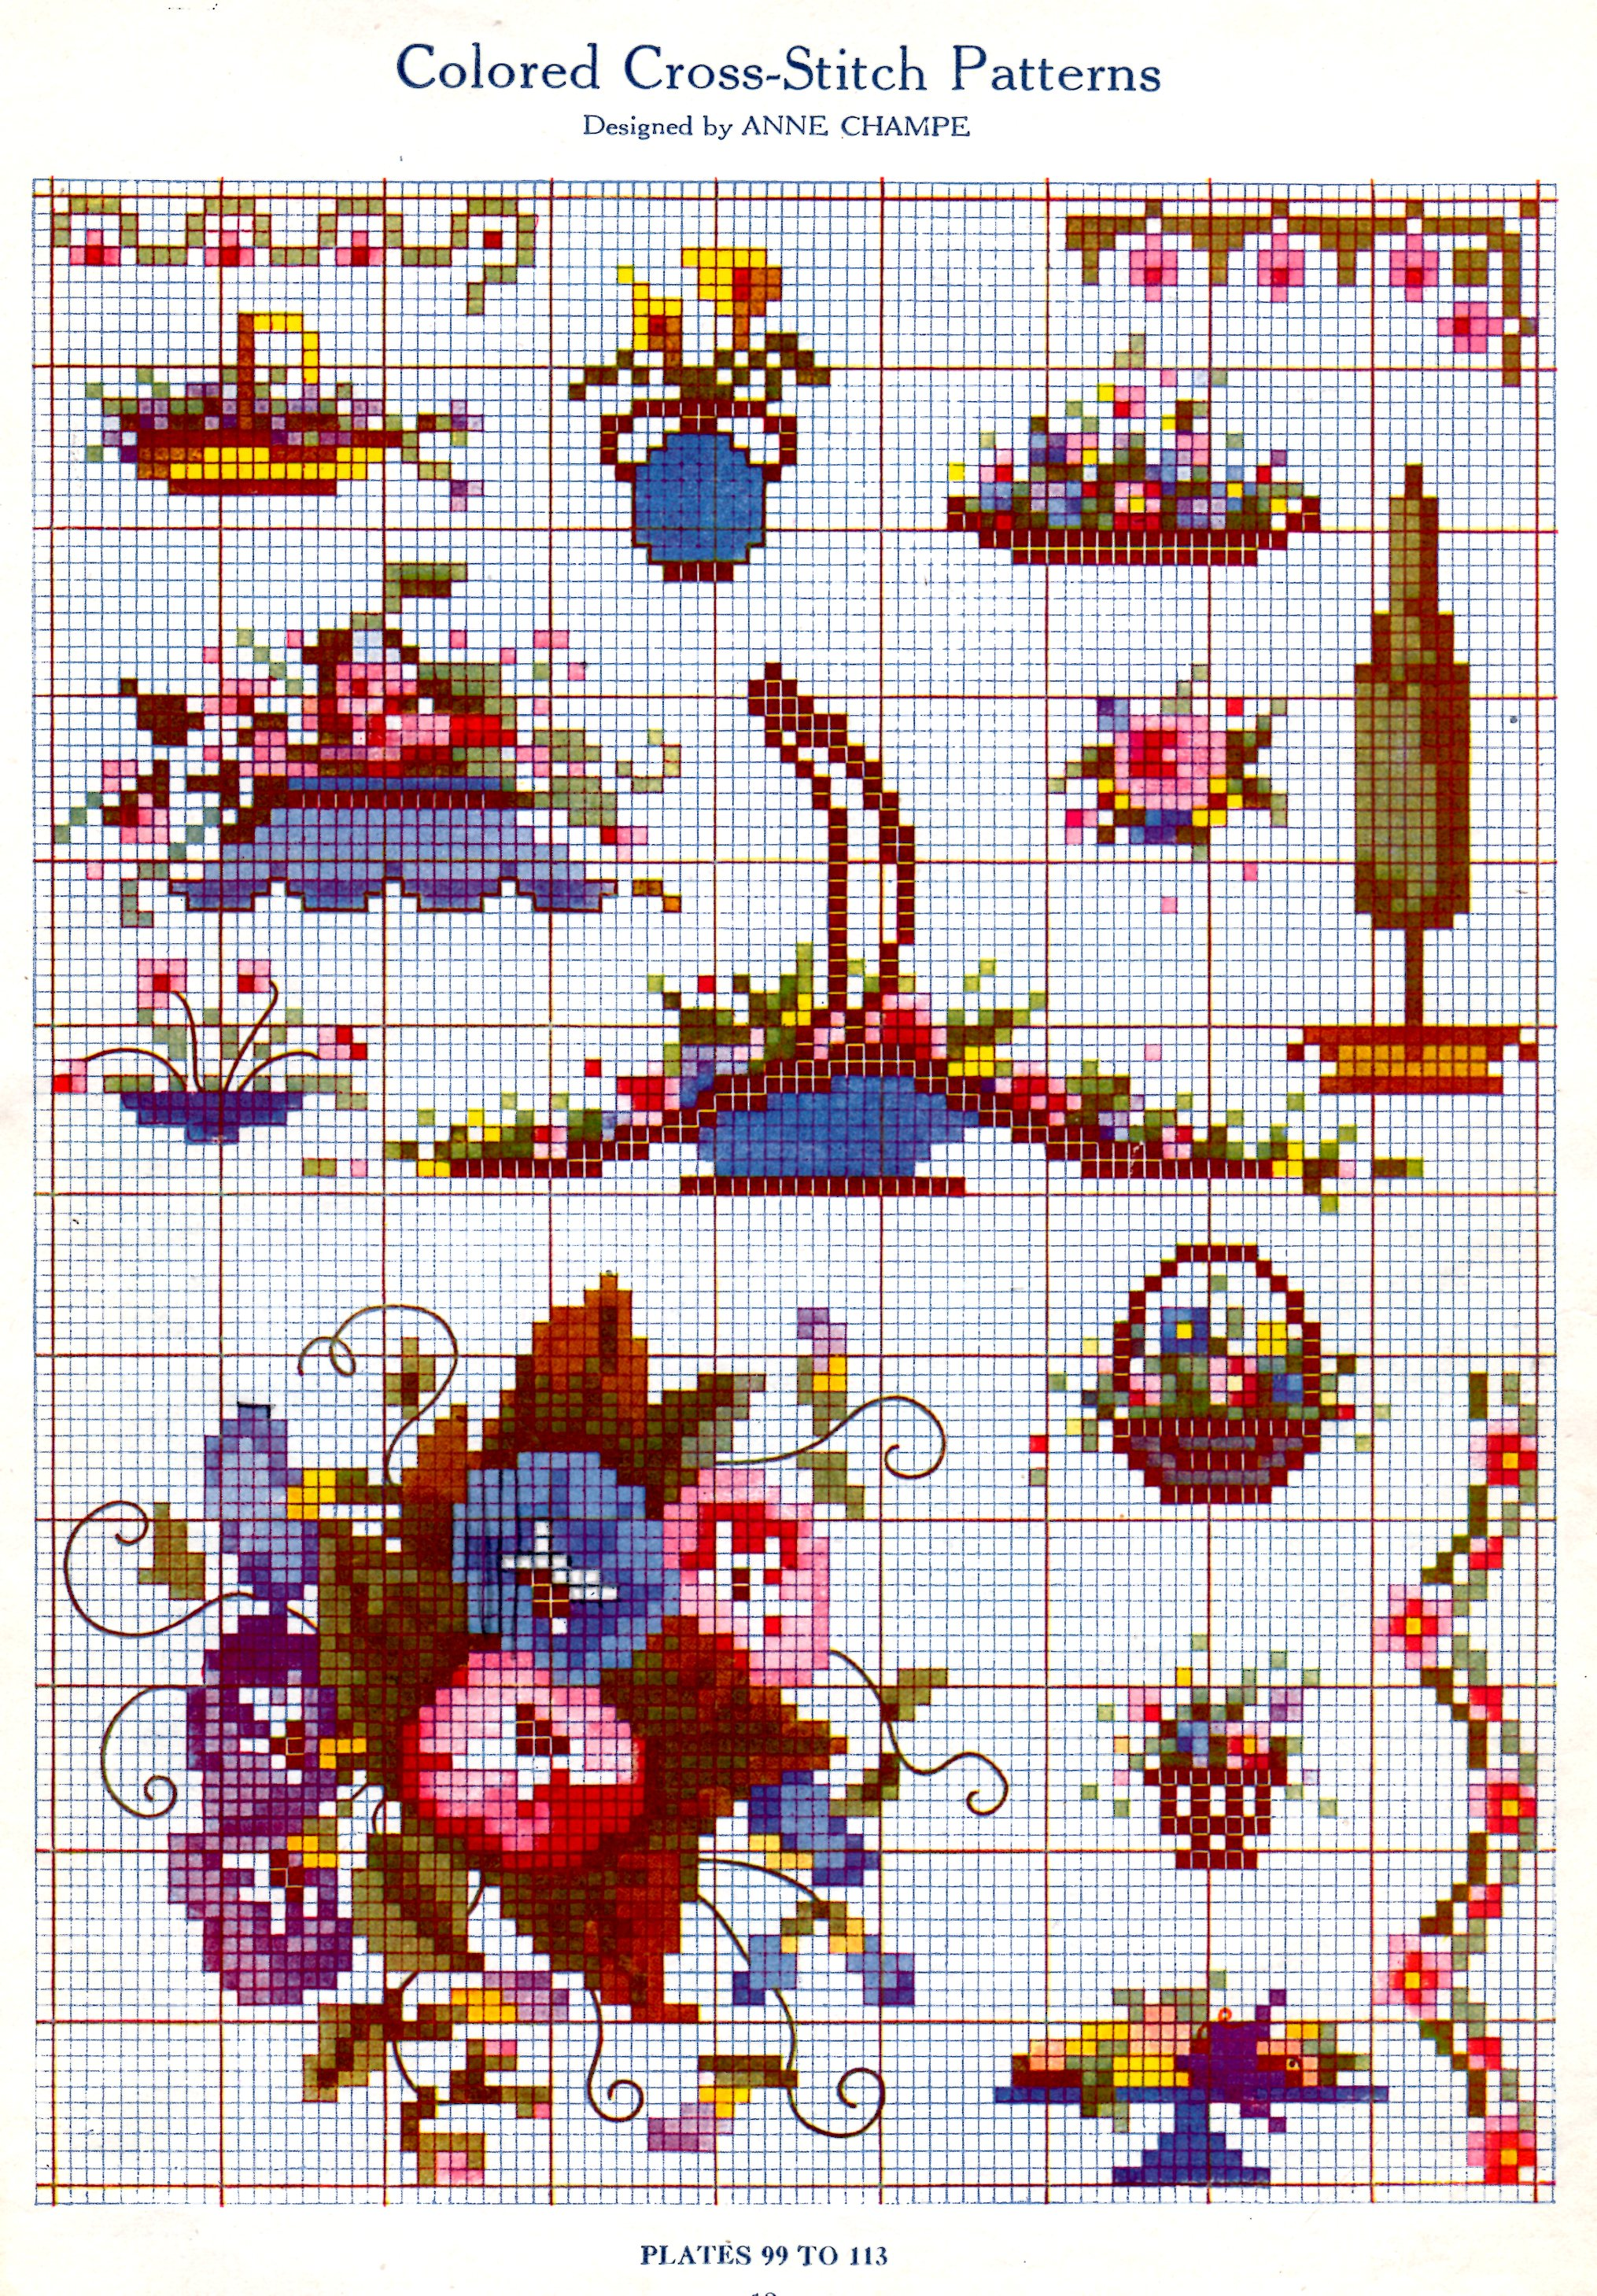 Color chart archives vintage crafts and more cross stitch chart in color geenschuldenfo Image collections